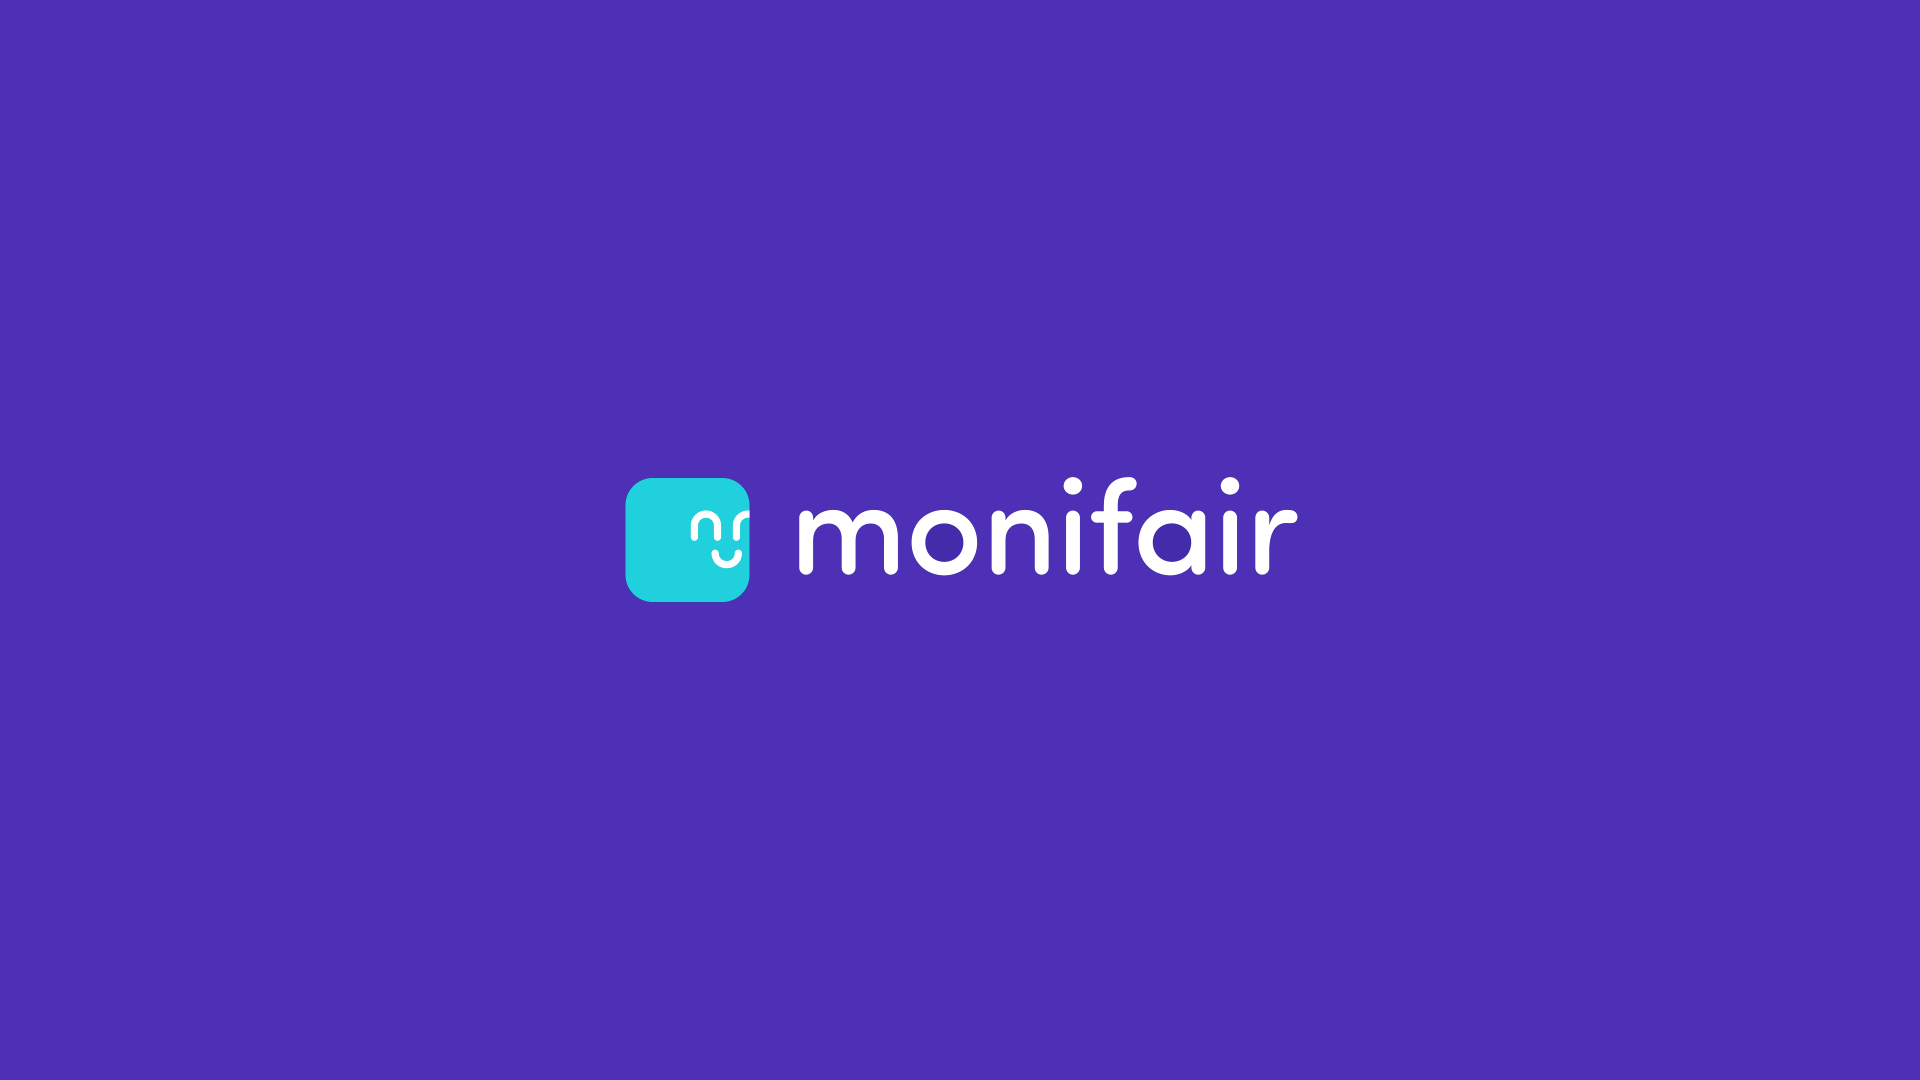 Monifair